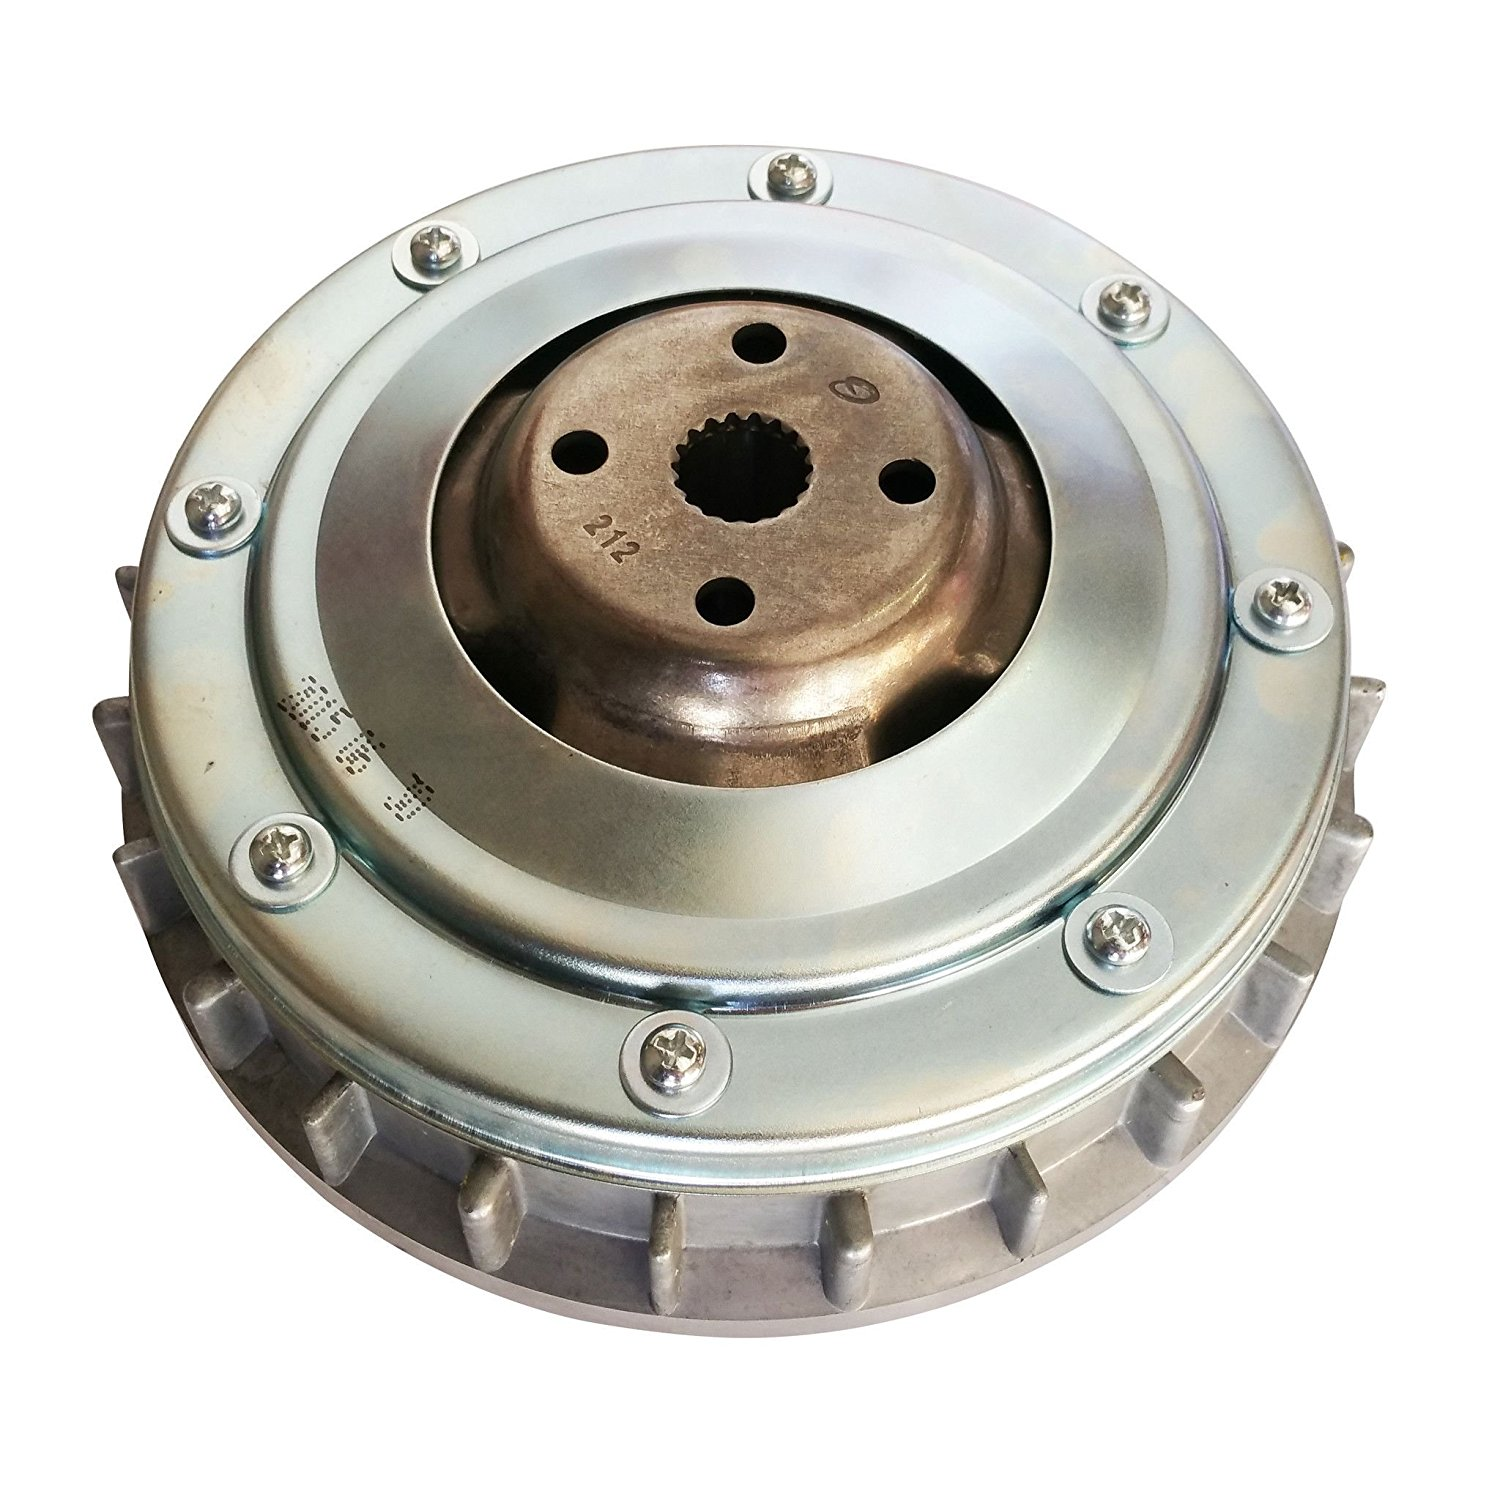 hight resolution of engine niche primary clutch sheave assembly for yamaha grizzly 700 4x4 2007 2012 niche industries